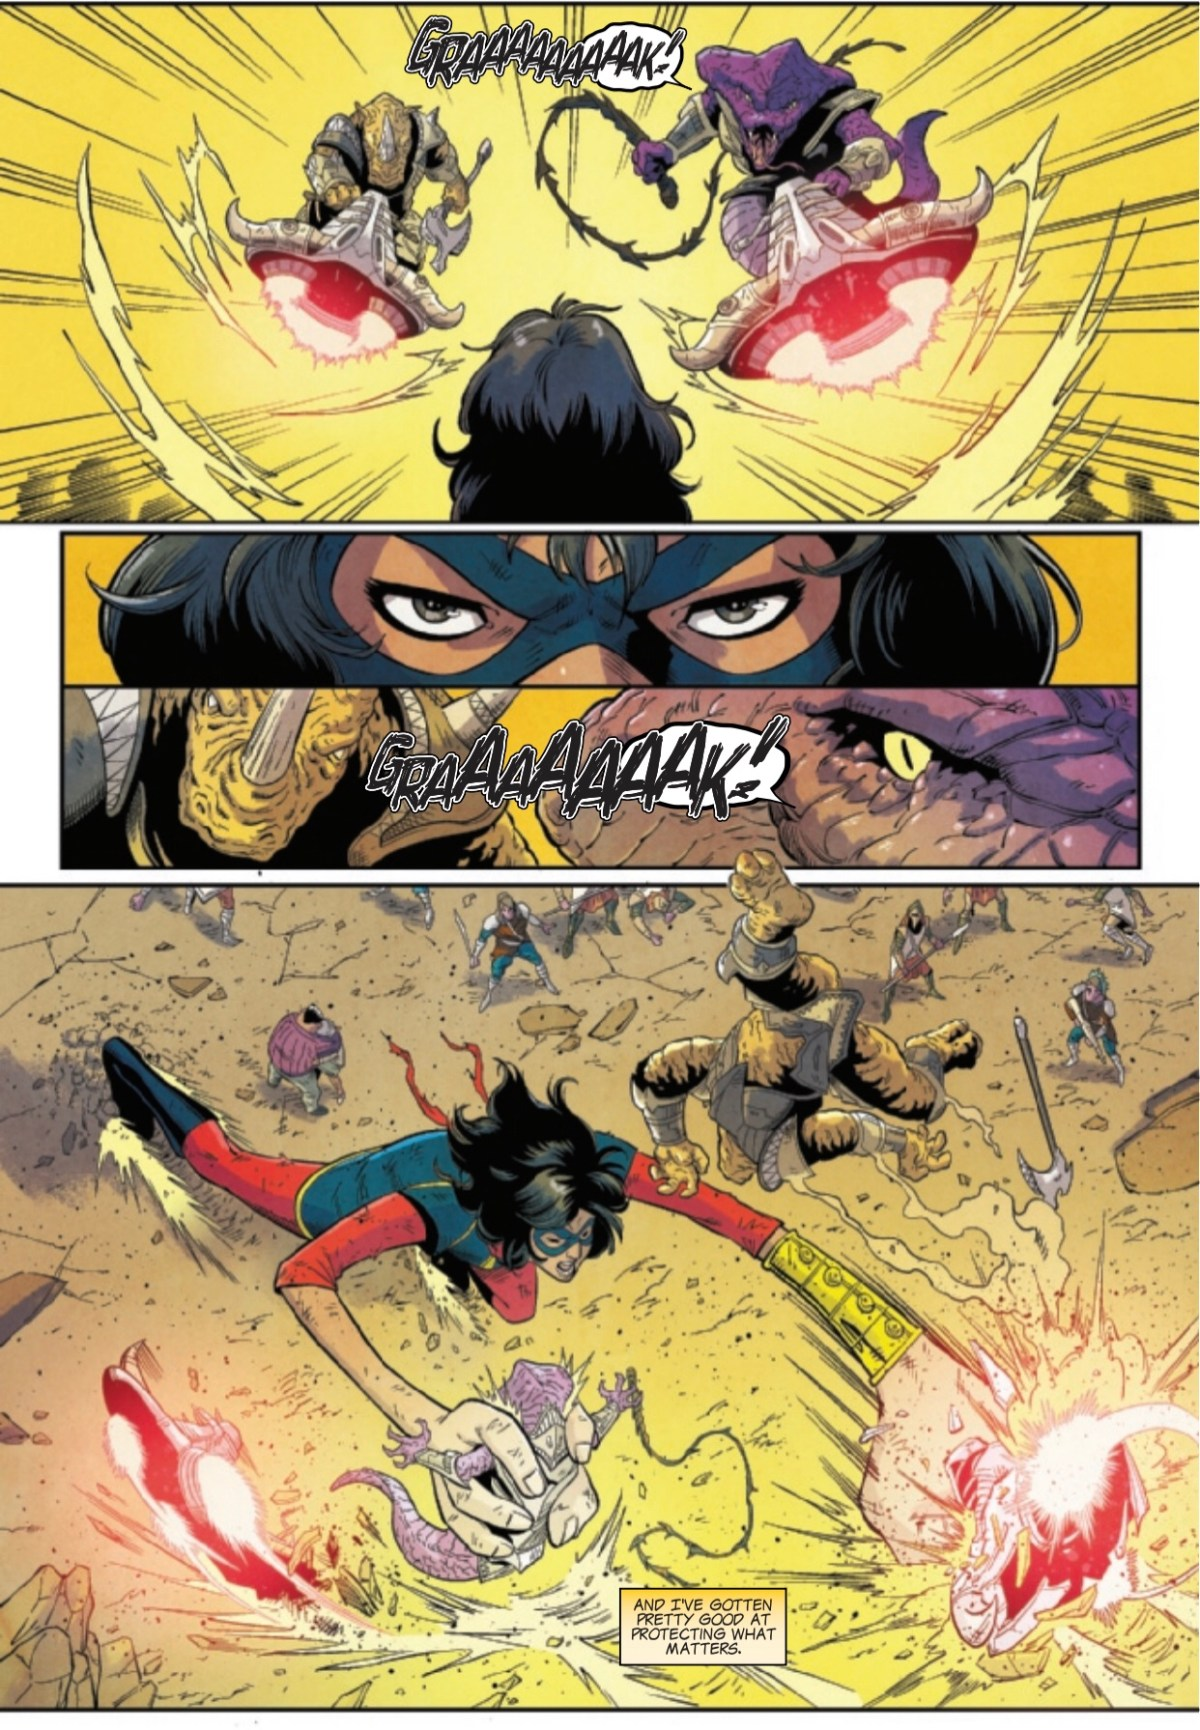 Ms Marvel fights off the Beast Legions on page 4 of The Magnificent Ms Marvel #5.